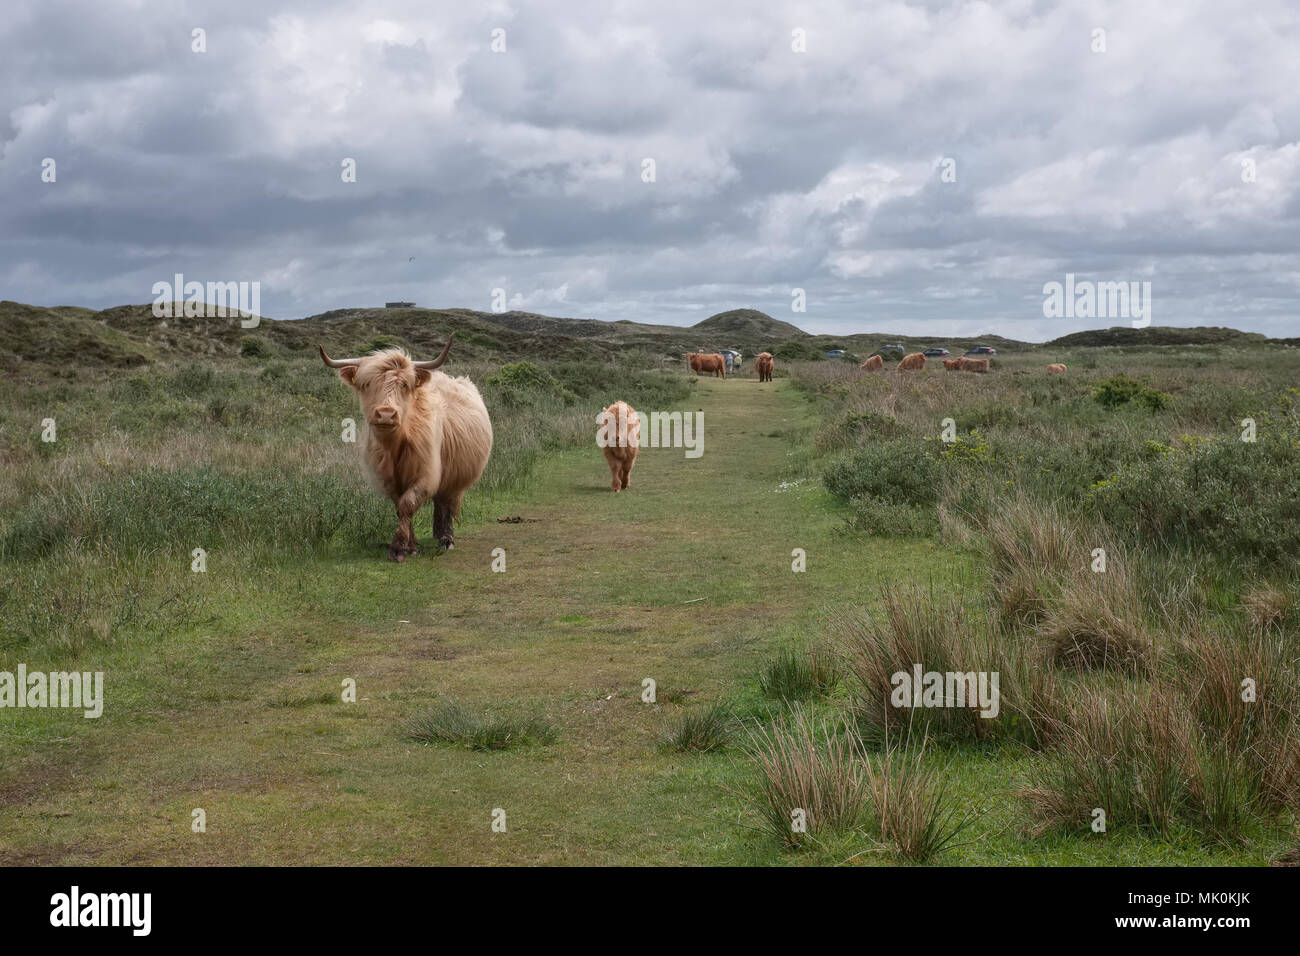 Illustration shows Scottish Highland cow and calf in the Dunes of Texel, Monday 16 May 2016, Texel, the Netherlands. - Stock Image